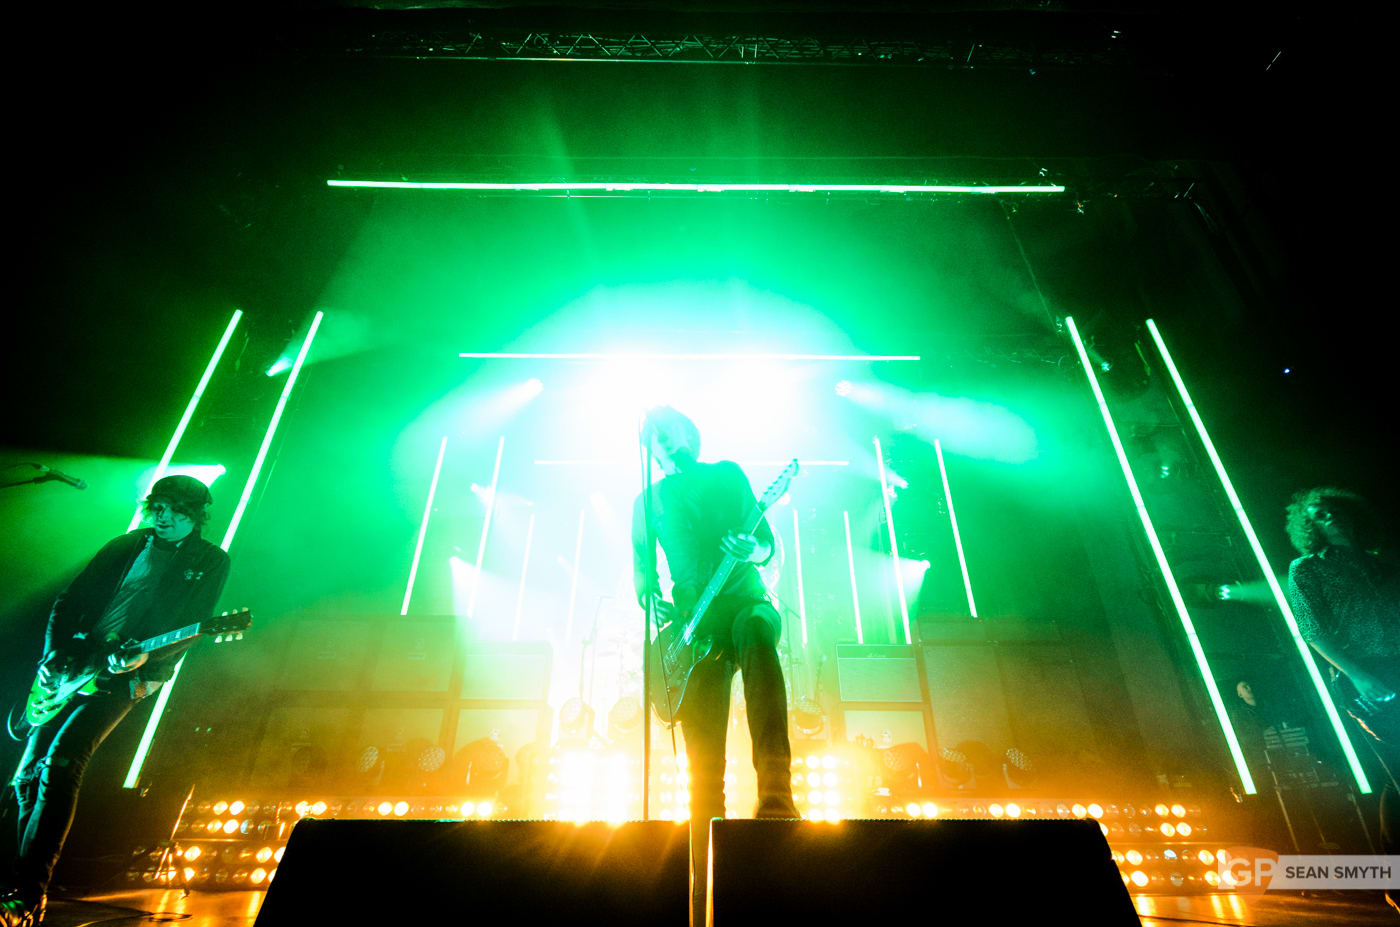 catfish-and-the-bottlemen-at-the-olympia-theatre-by-sean-smyth-20-11-16-27-of-27